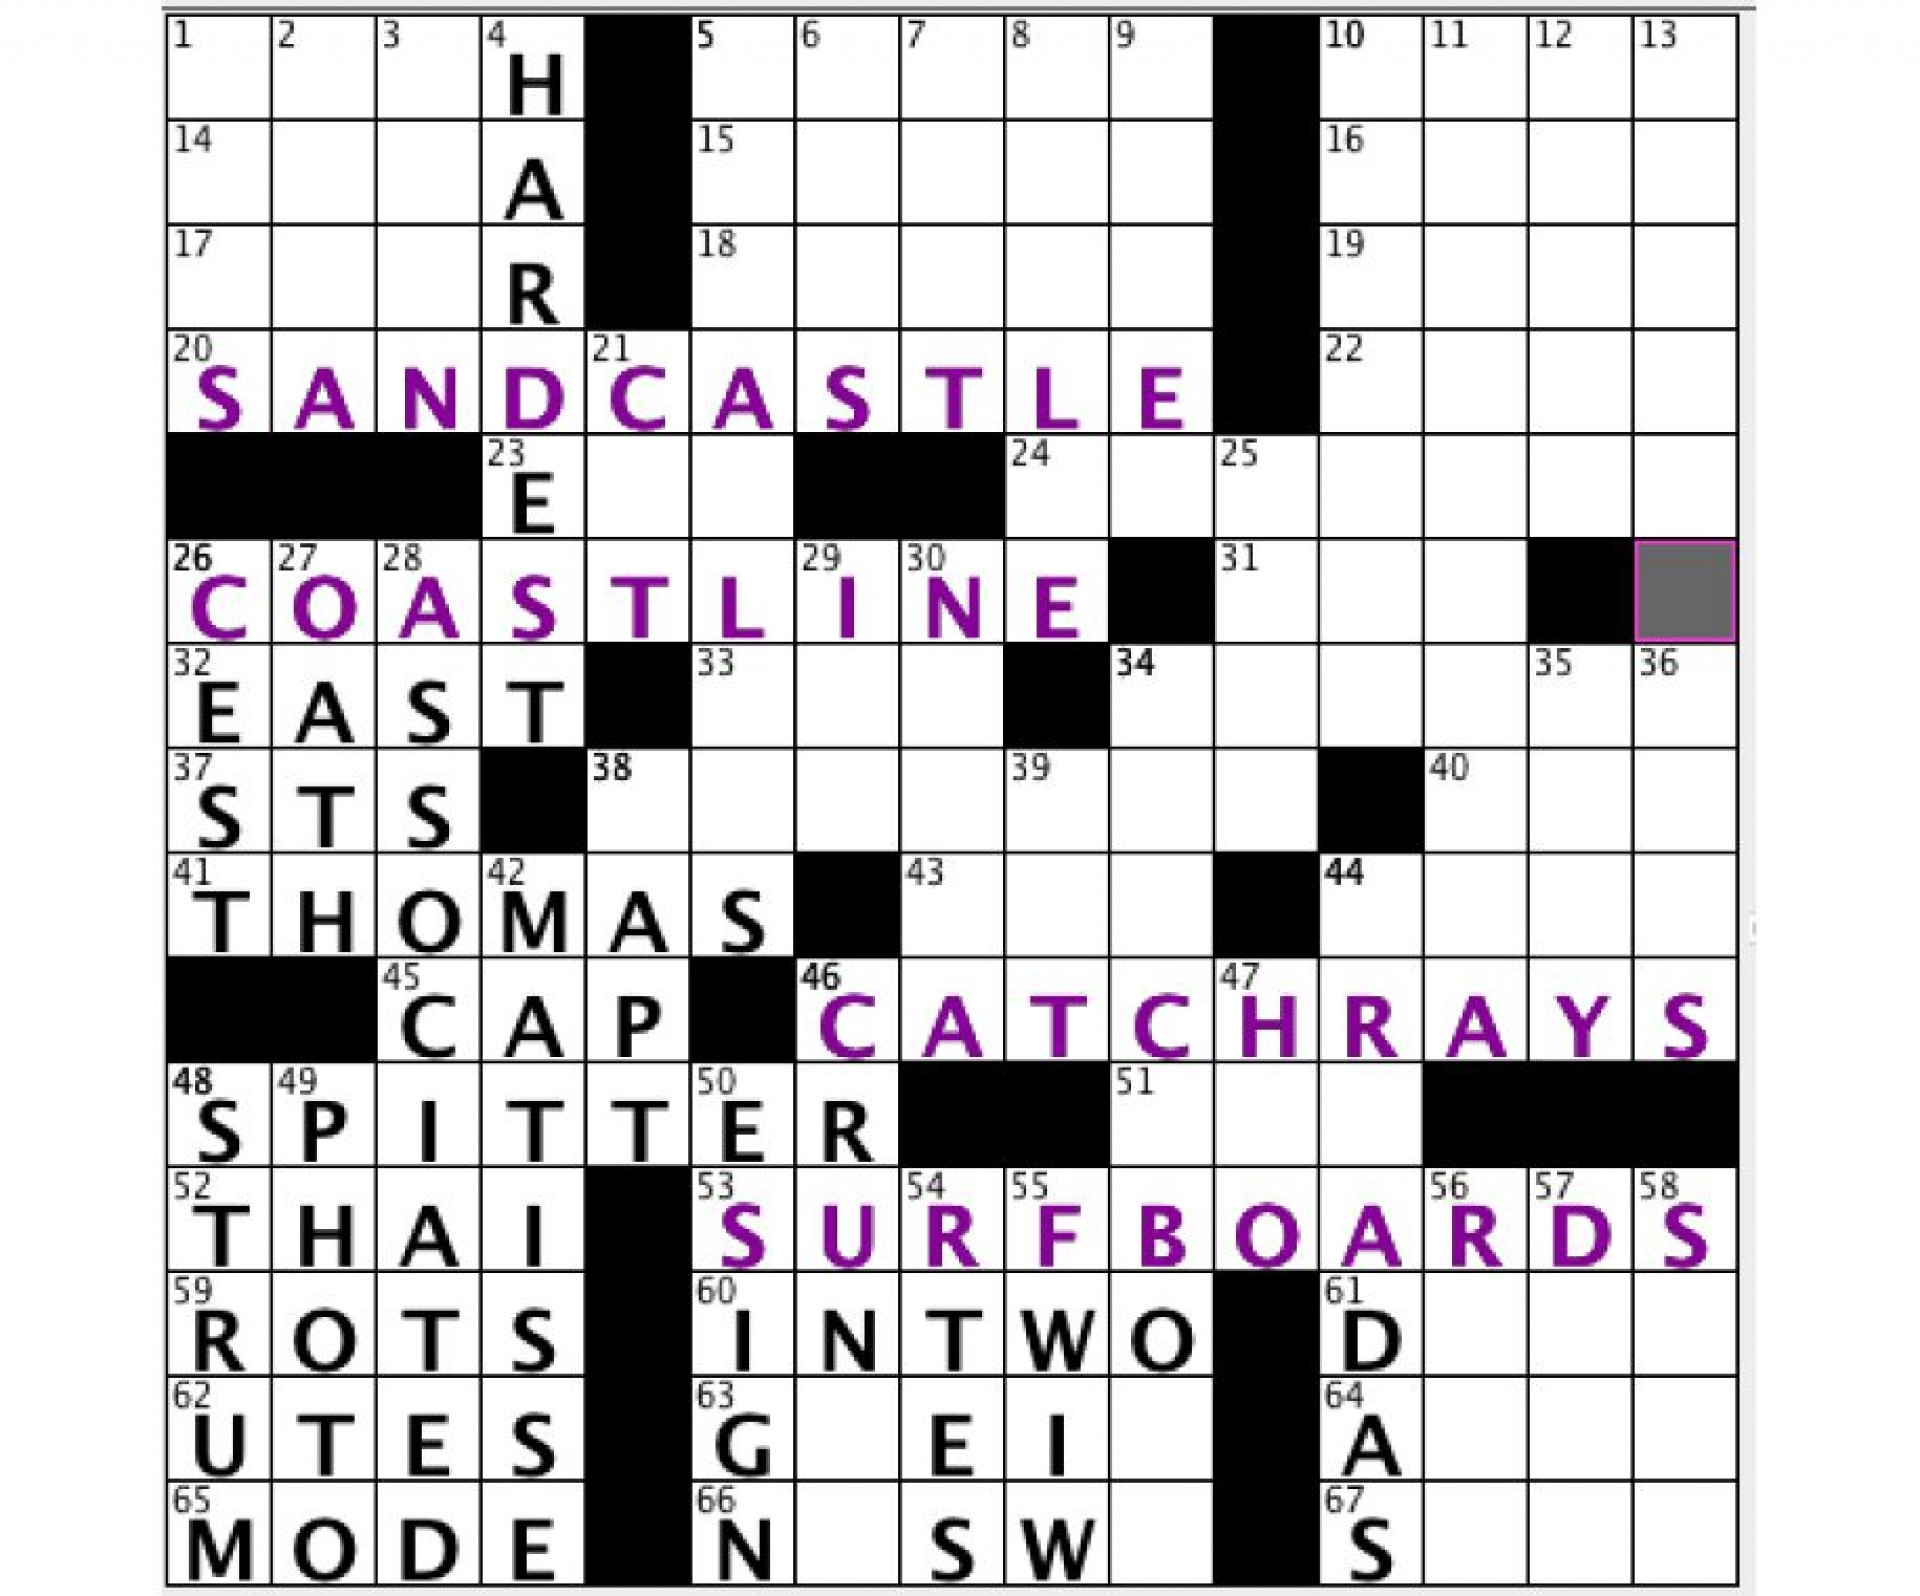 000 Unforgettable Robust Crossword Clue Sample  Strong Effect 6 Letter Very Dan Word1920